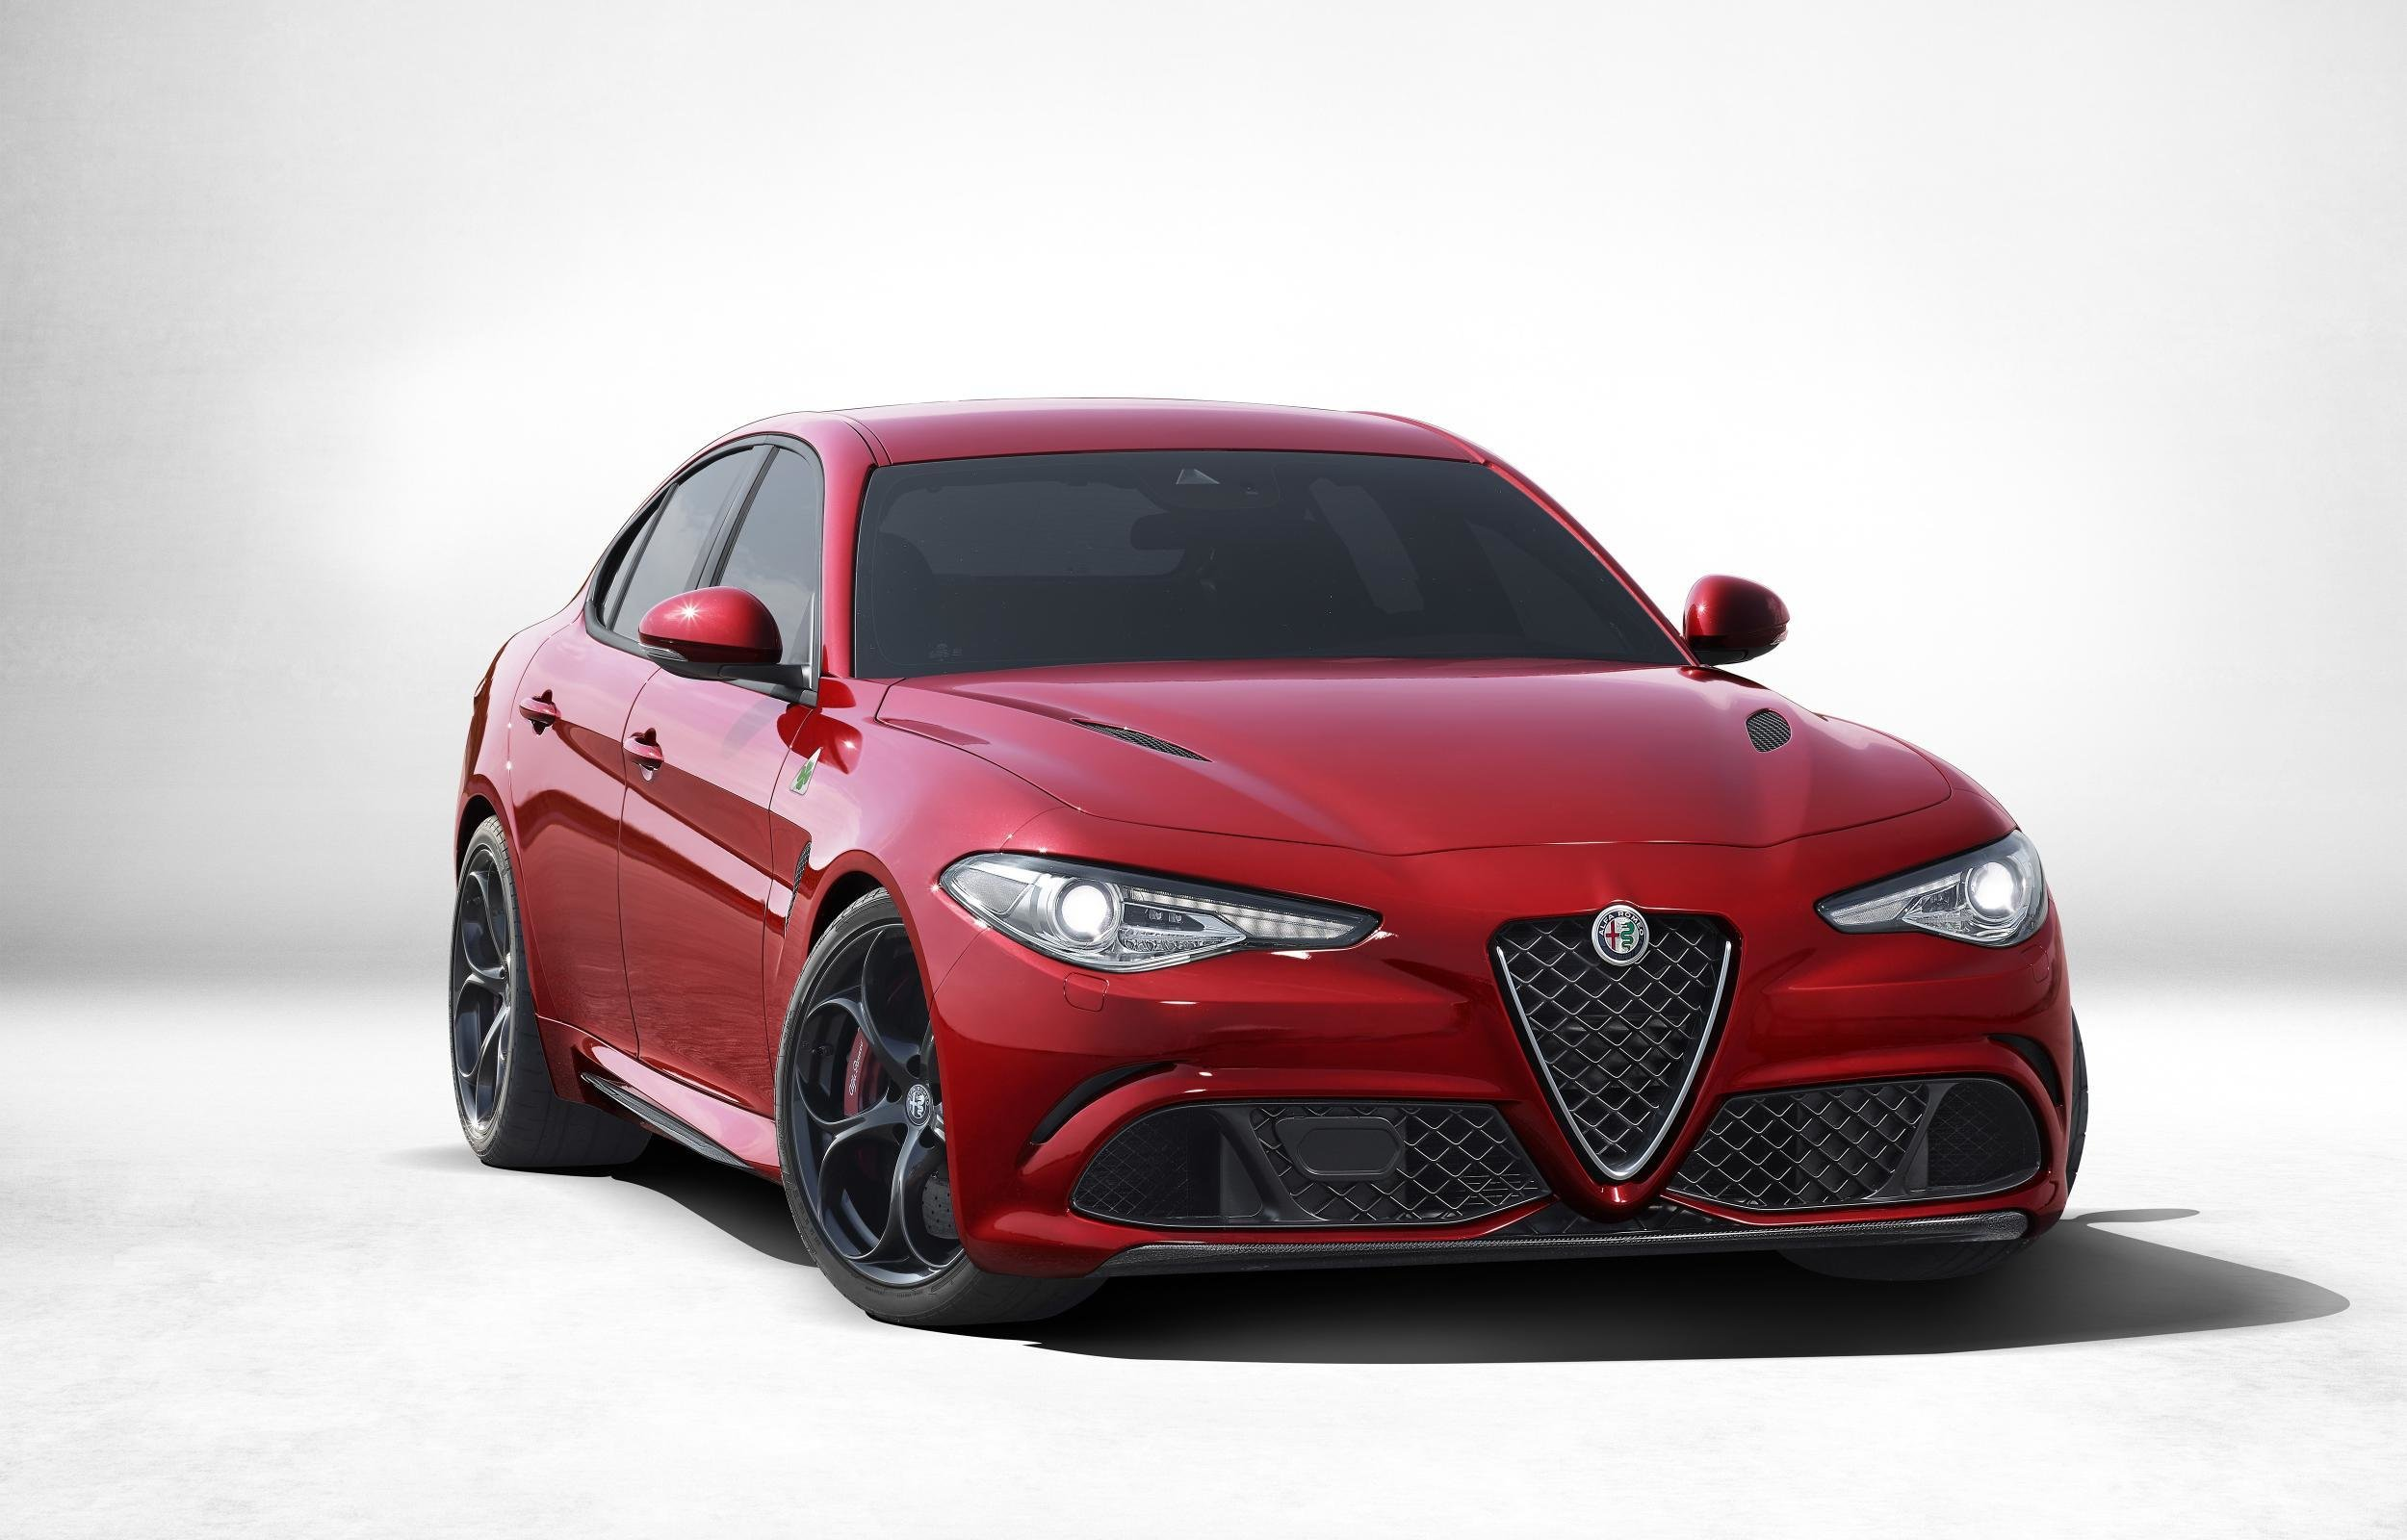 Latest 2016 Alfa Romeo Giulia Tipo 952 Quadrifoglio Verde Is Free Download